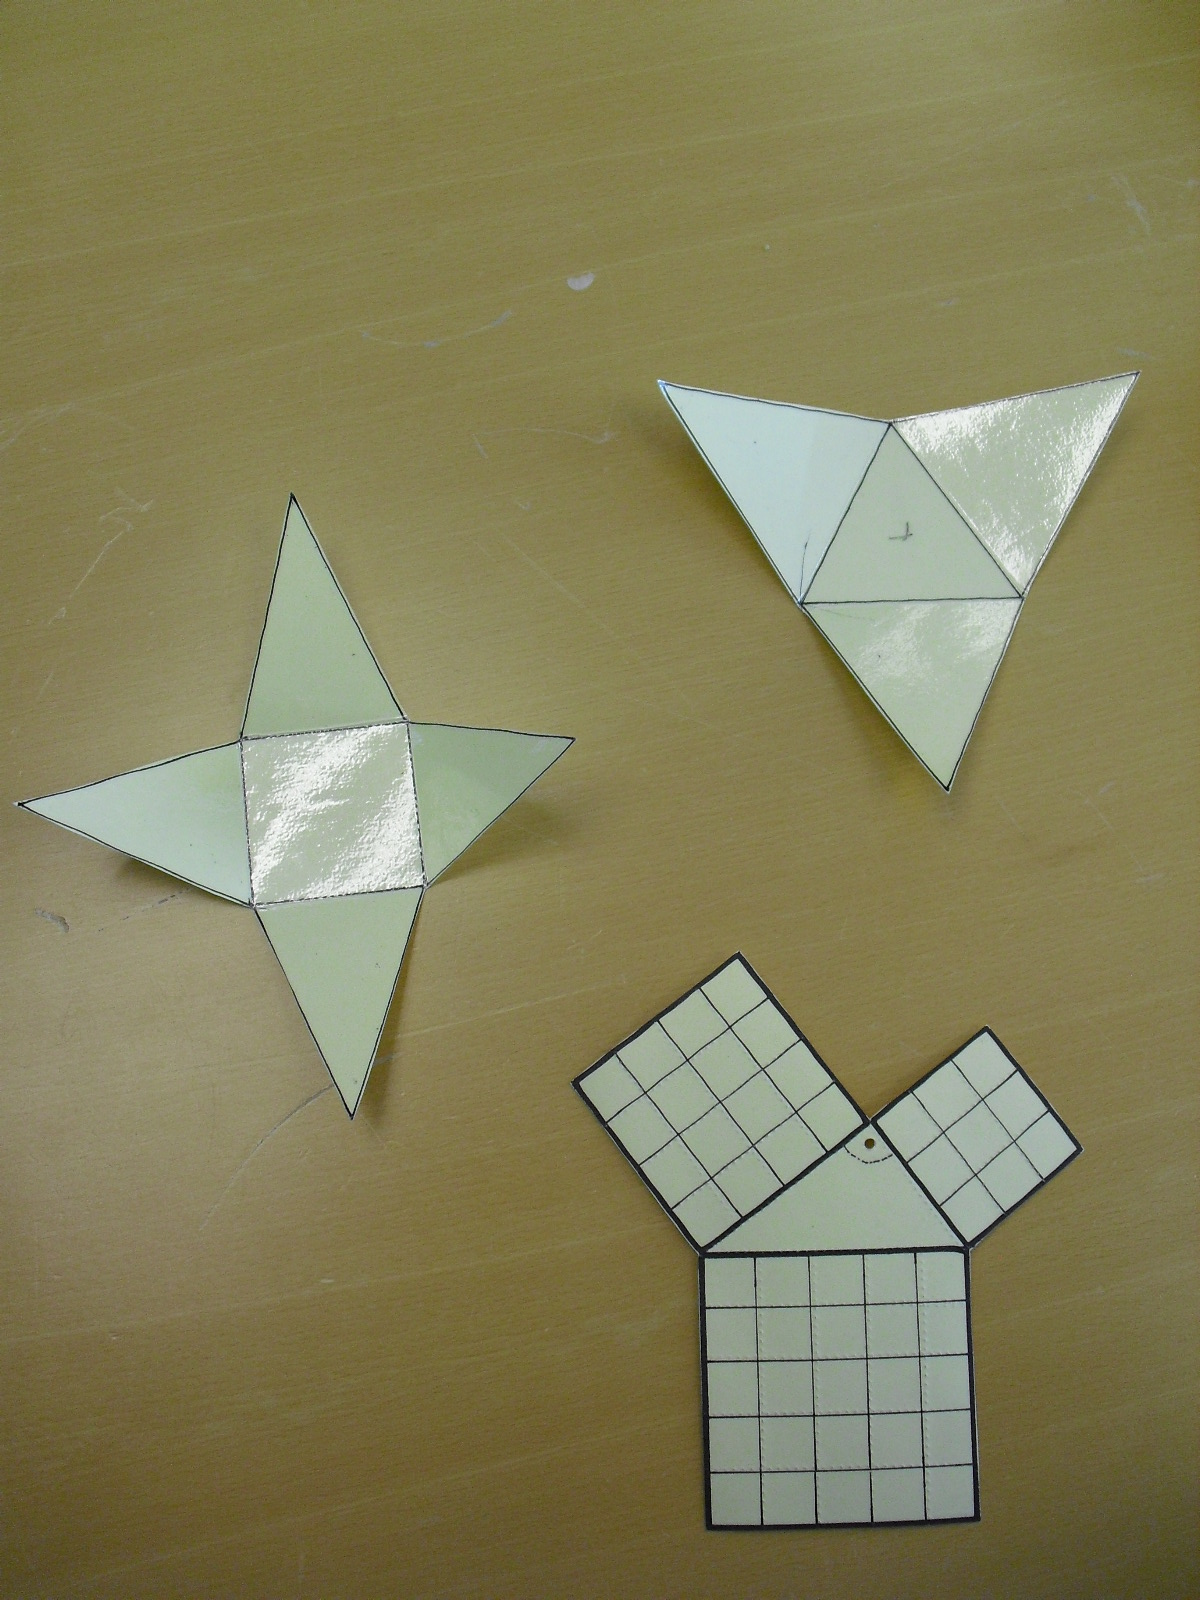 Homemade foldouts of pyramids and Phytagorean theorem